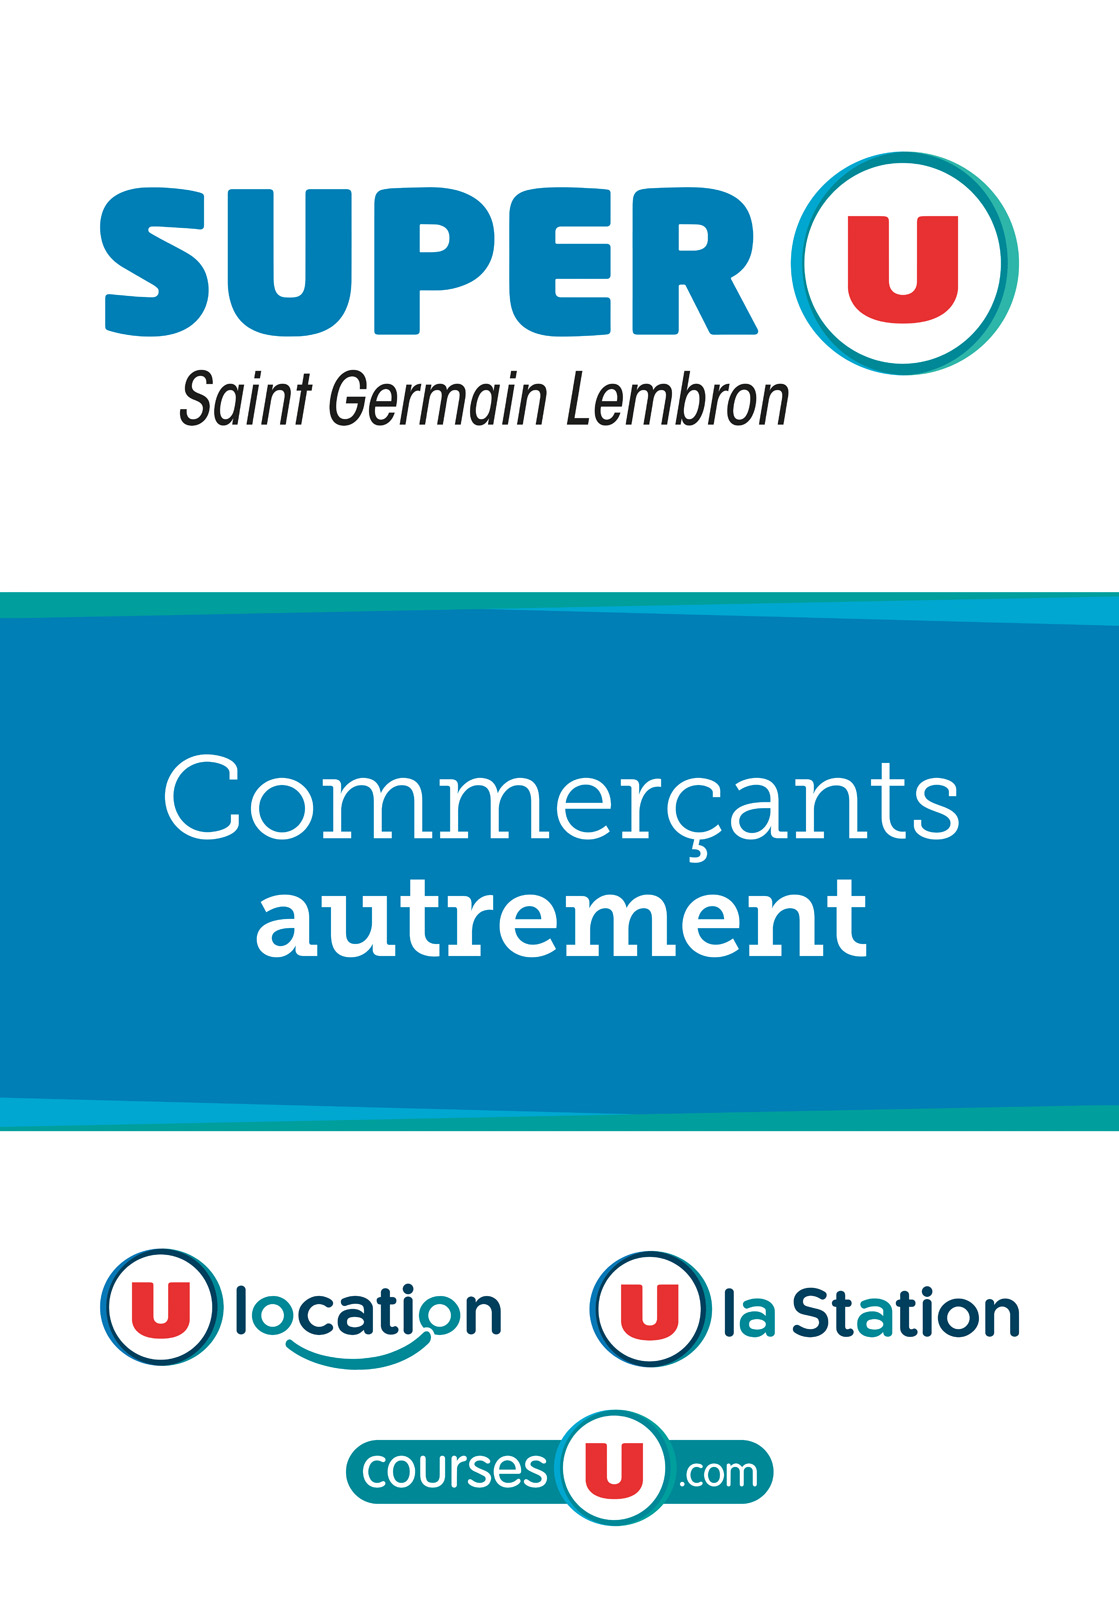 logo Super U Saint Germain Lembron